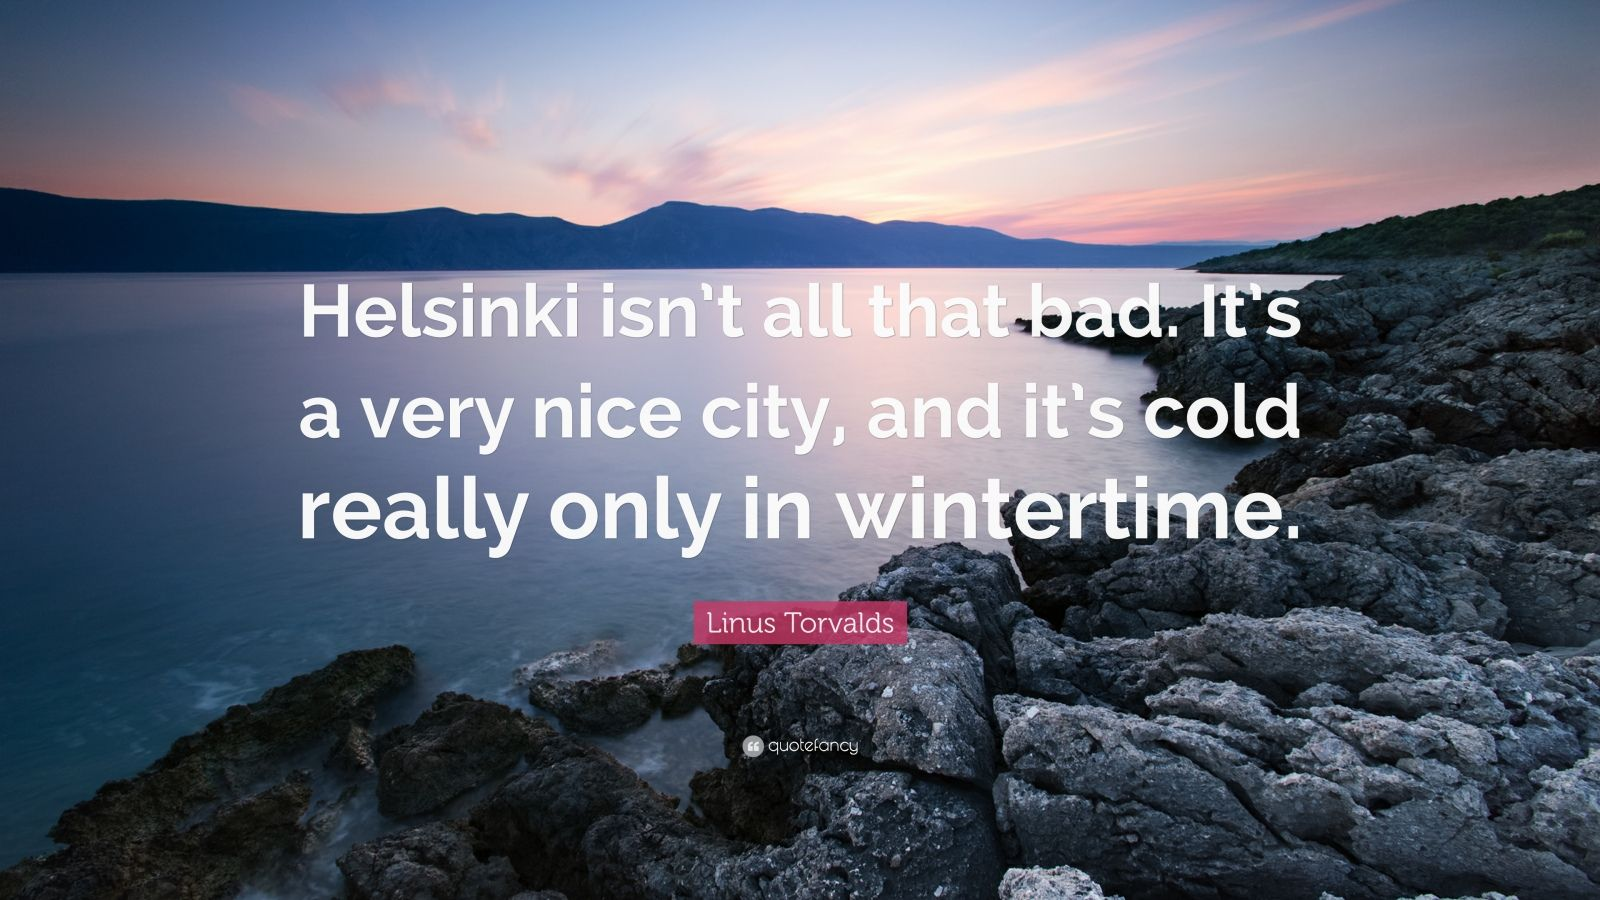 """Linus Torvalds Quote: """"Helsinki isn't all that bad. It's a very nice city, and it's cold really only in wintertime."""""""